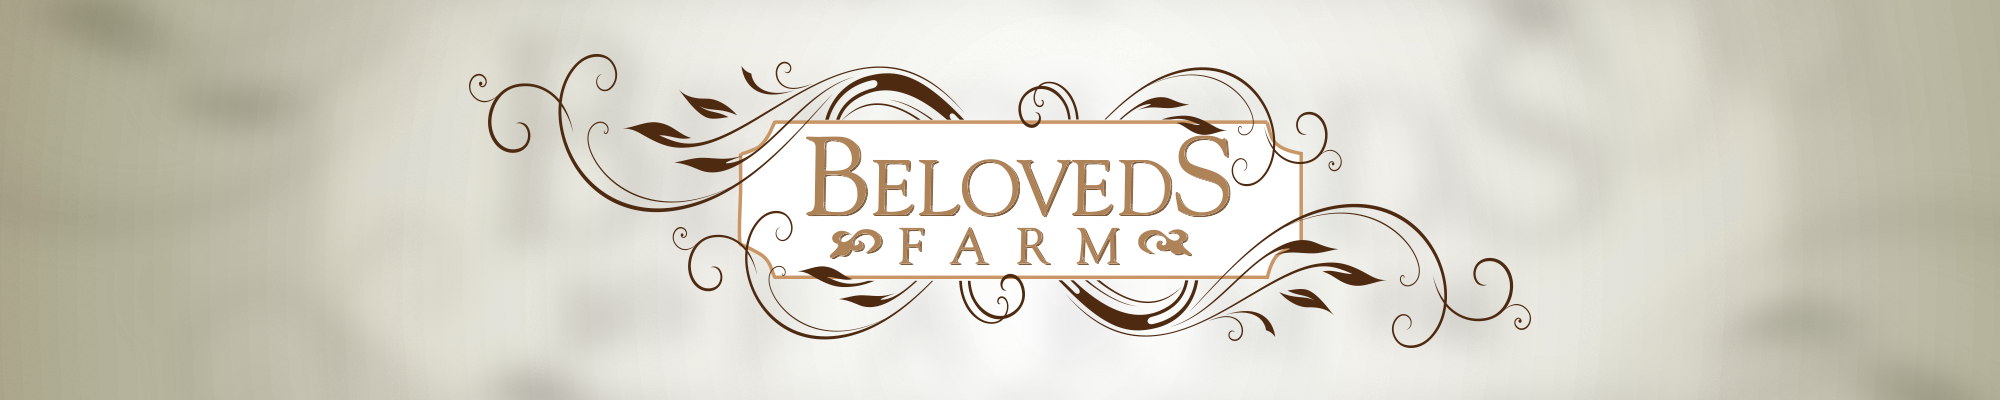 Beloved-farm